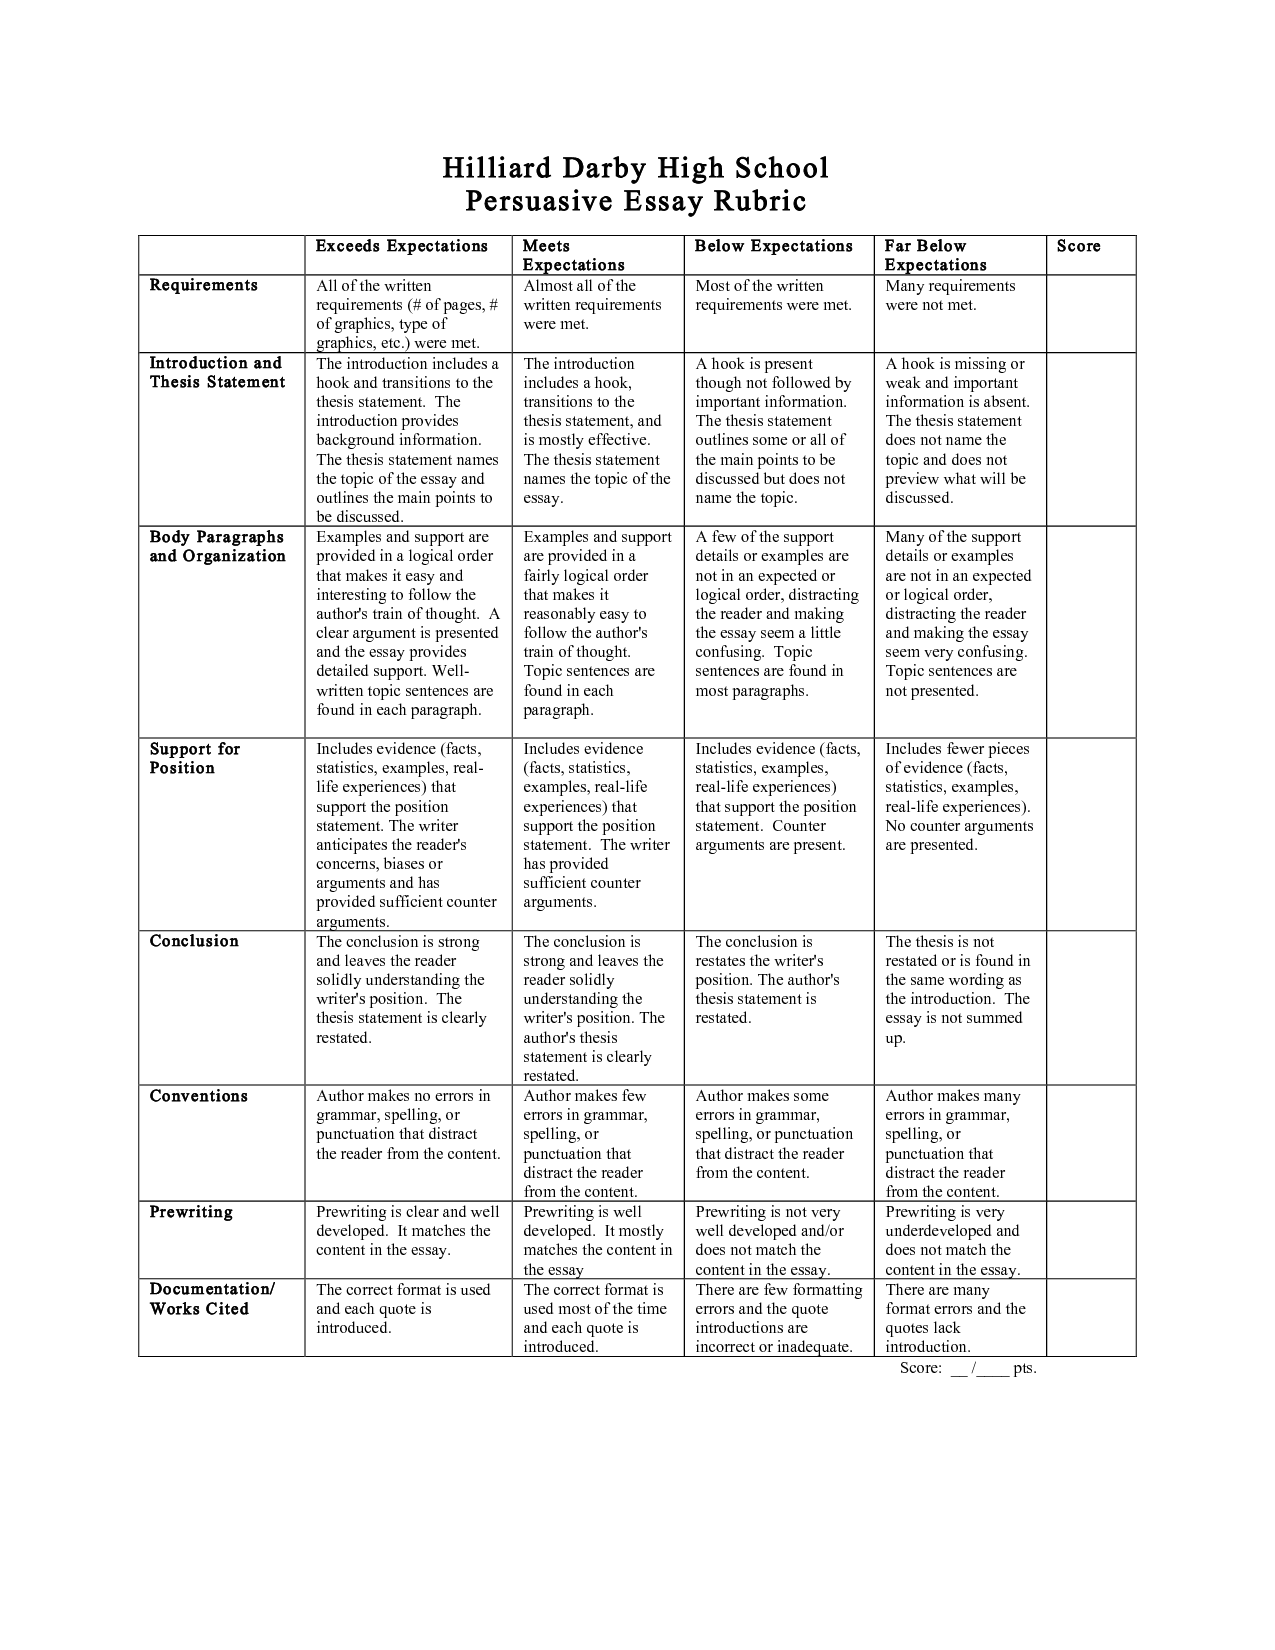 015 Persuasive Essay Rubric High School 438153 Argumentative Research Outstanding Paper Full